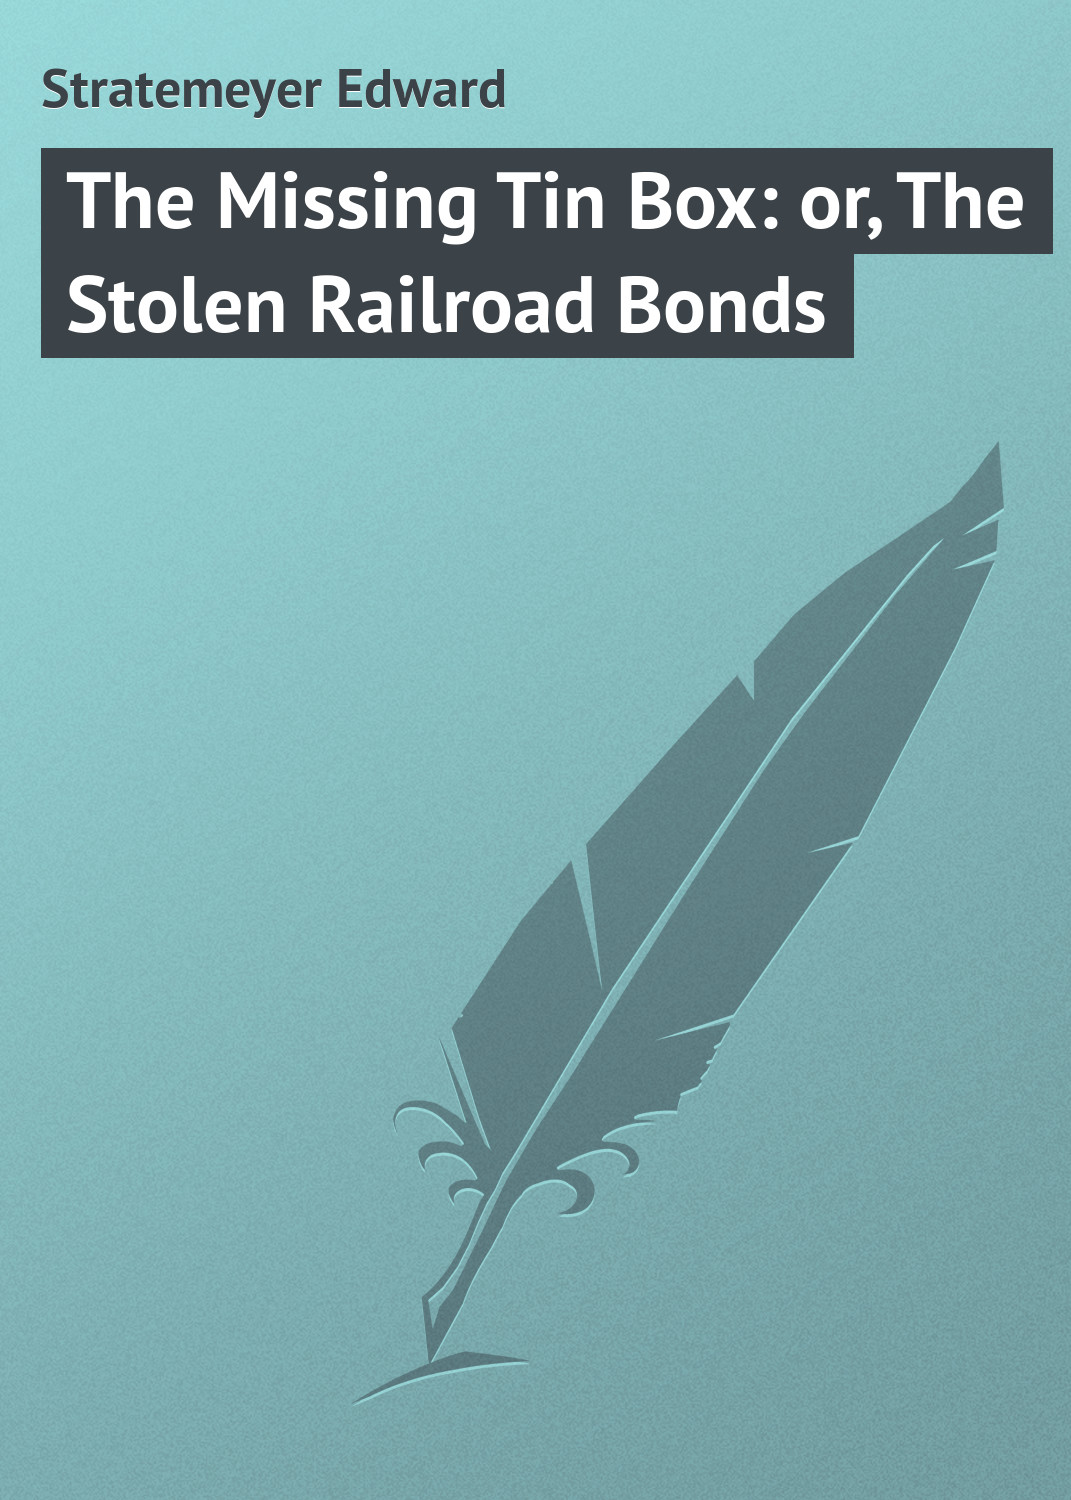 Stratemeyer Edward The Missing Tin Box: or, The Stolen Railroad Bonds